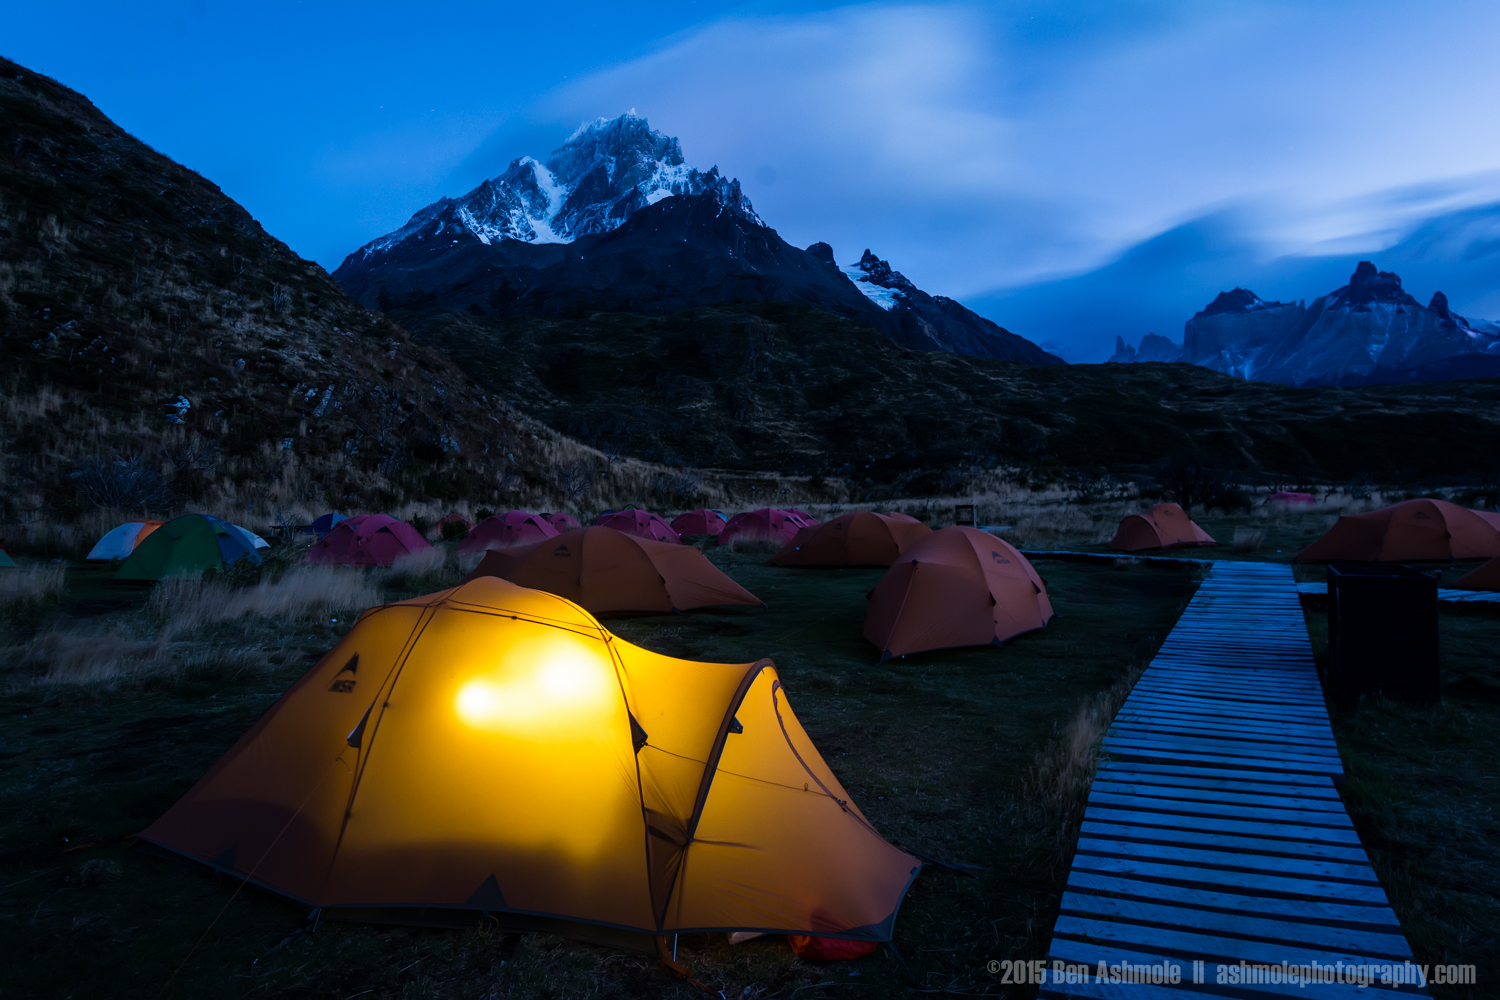 Early Morning Campsite, Torres Del Paine, Patagonia, Chile